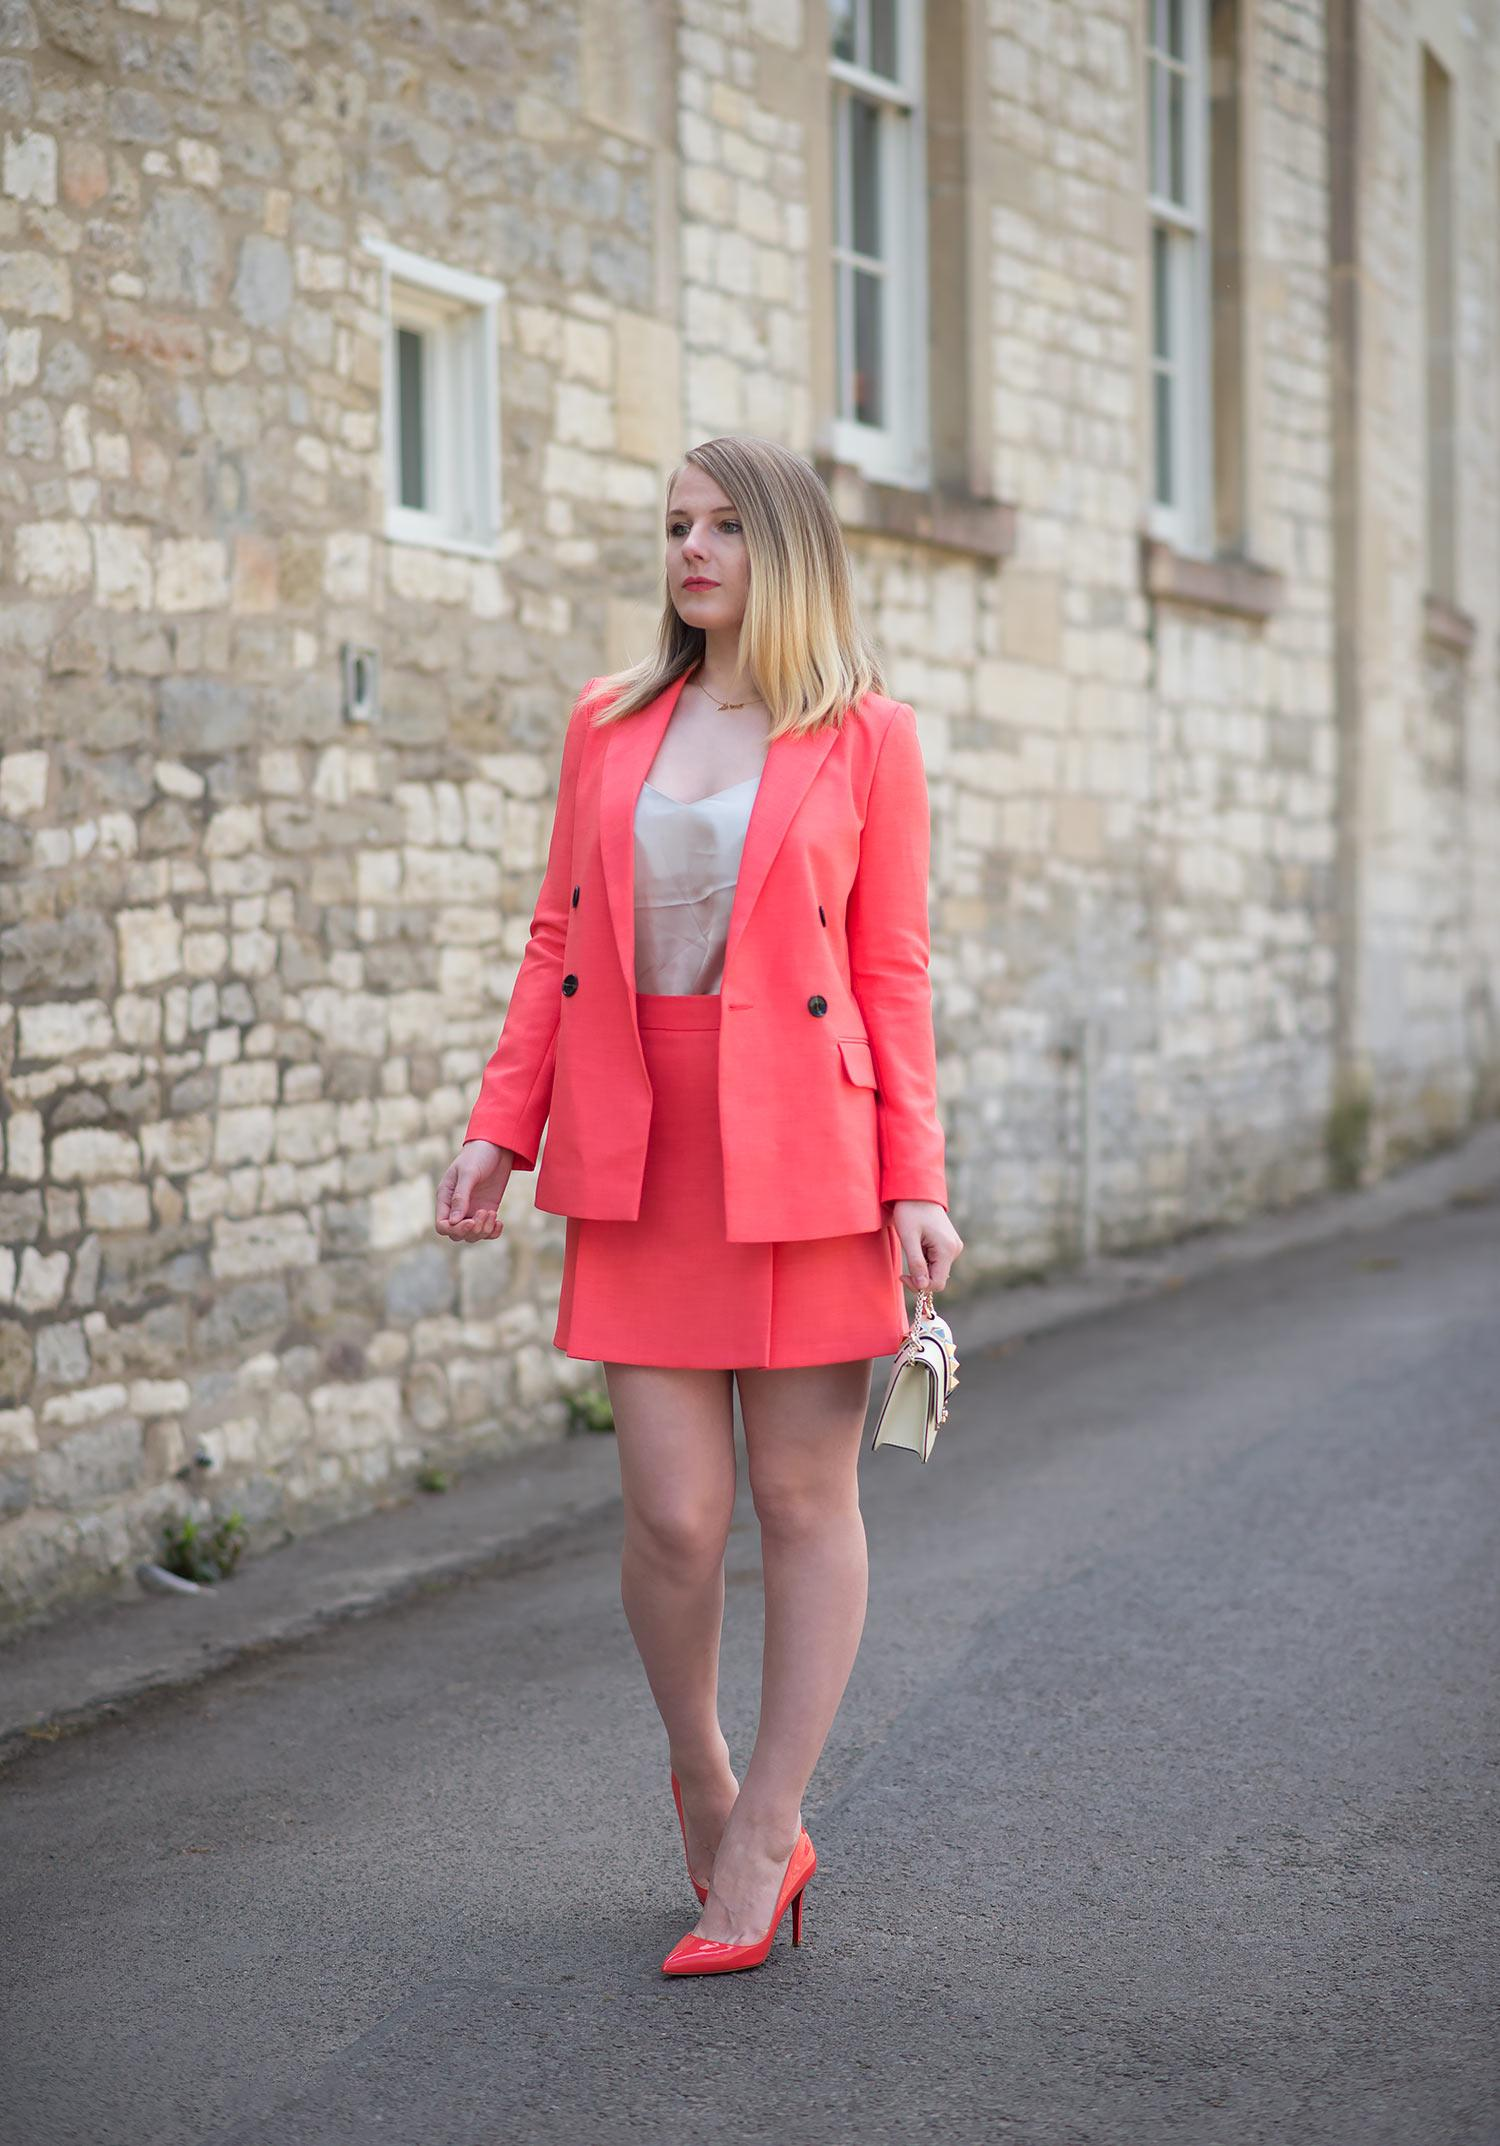 9a9f8b377c The Coral Skirt Suit